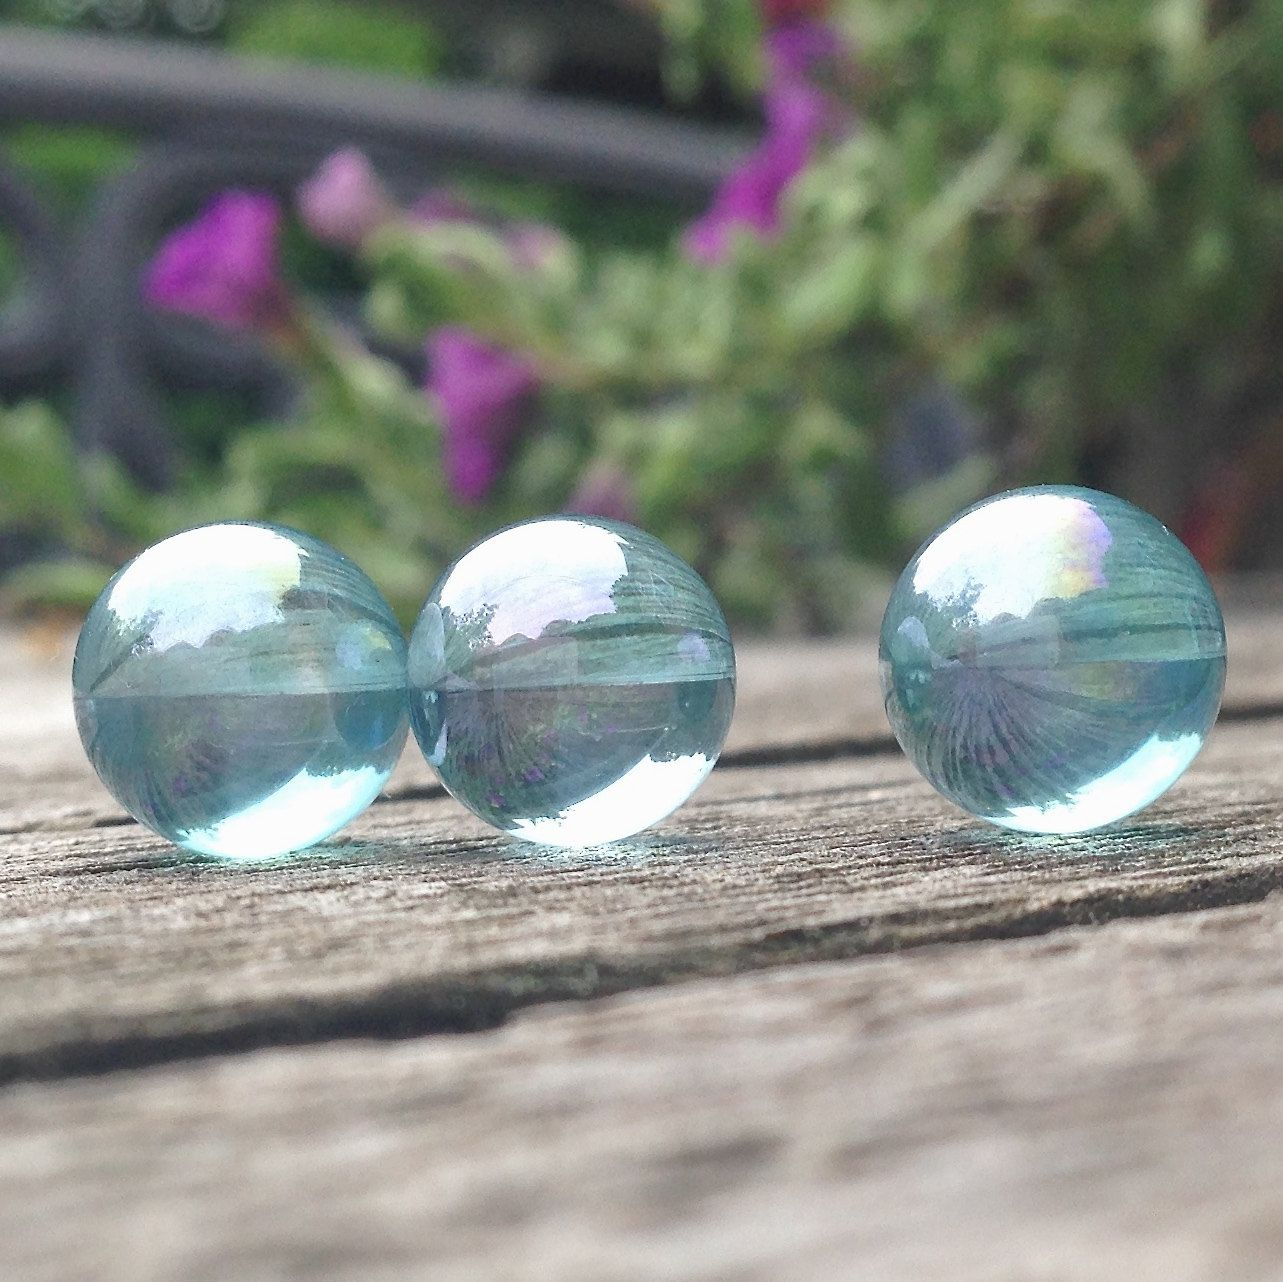 3 Aqua Aura Quartz 10mm Round Angel Aura Pure And Clear Undrilled Gemstone Aqua Aura Quartz Aqua Aura Aura Quartz